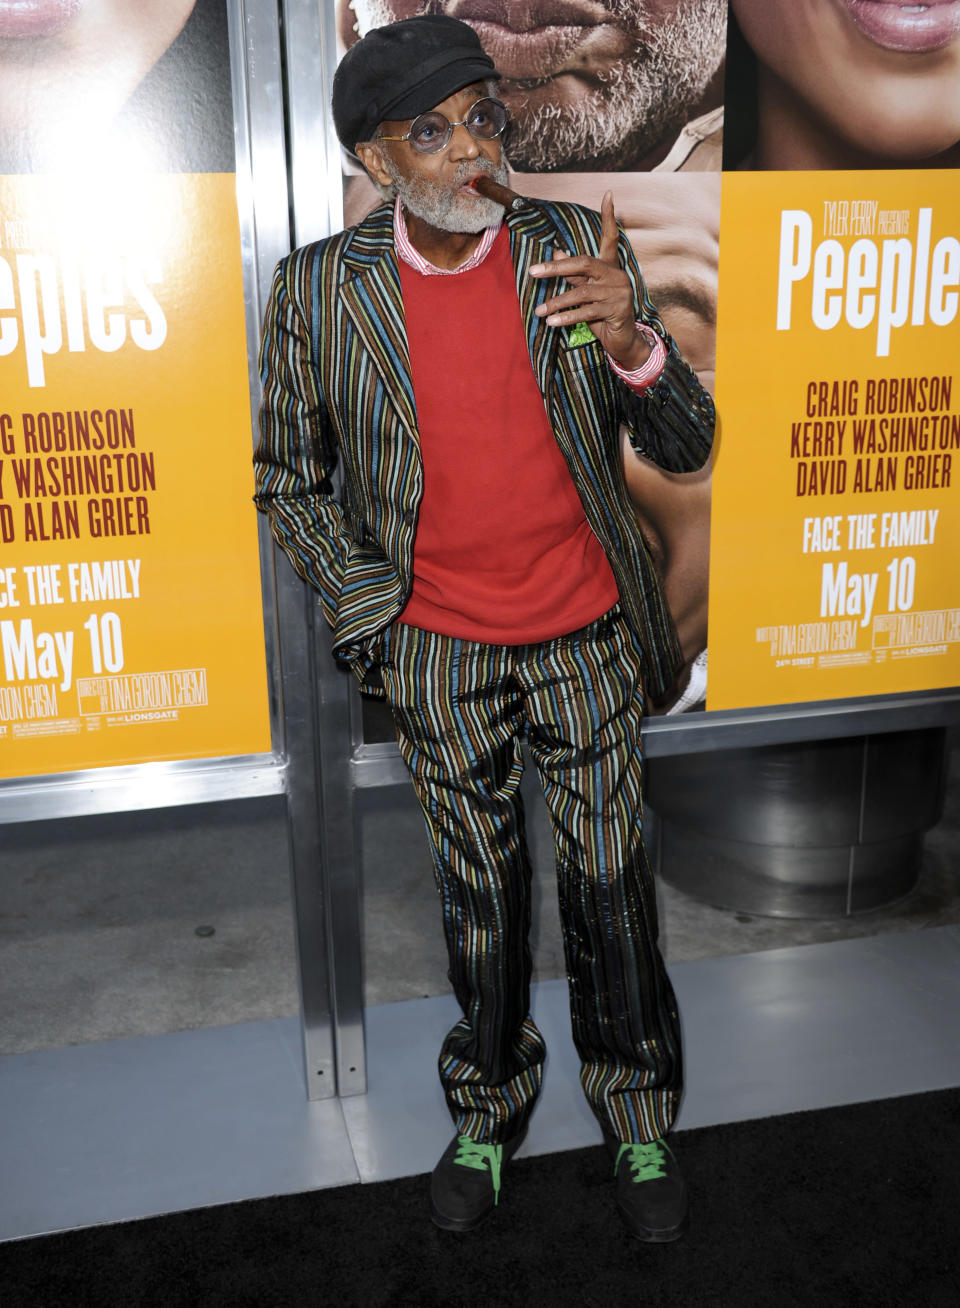 """FILE - Melvin Van Peebles arrives at the world premiere of """"Peeples"""" at the ArcLight Hollywood on Wednesday, May 8, 2013 in Los Angeles. Van Peebles, a Broadway playwright, musician and movie director whose work ushered in the """"blaxploitation"""" films of the 1970s, has died at age 89. His family said in a statement that Van Peebles died Tuesday night, Sept. 21, 2021, at his home. (Photo by Richard Shotwell/Invision/AP, File)"""